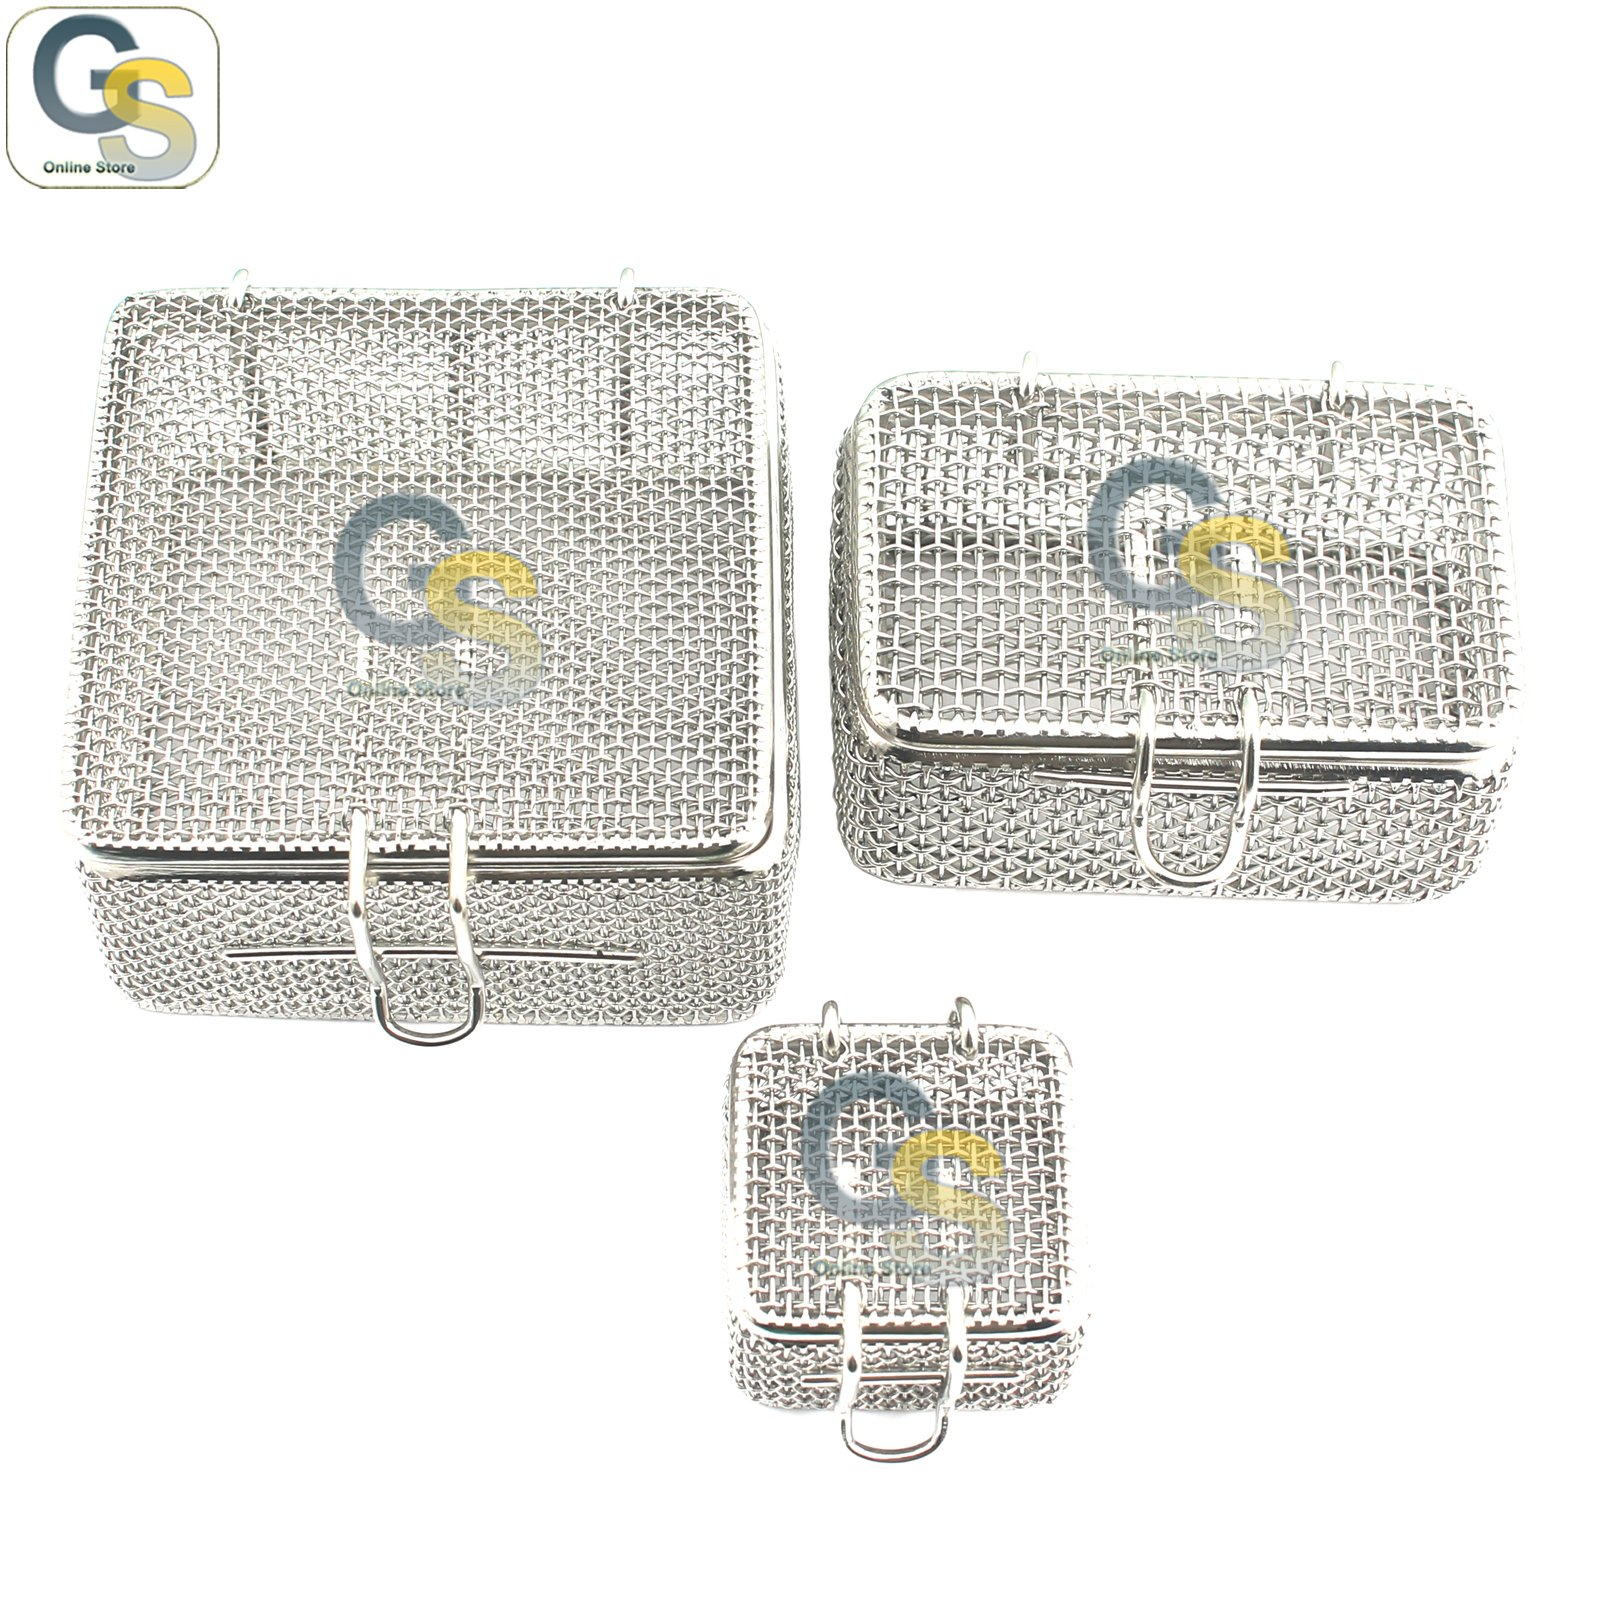 G.S SET OF 3 MICRO MESH TRAY PERFORATED MESH BOX DENTAL INSTRUMENTS,DN-374 BEST QUALITY